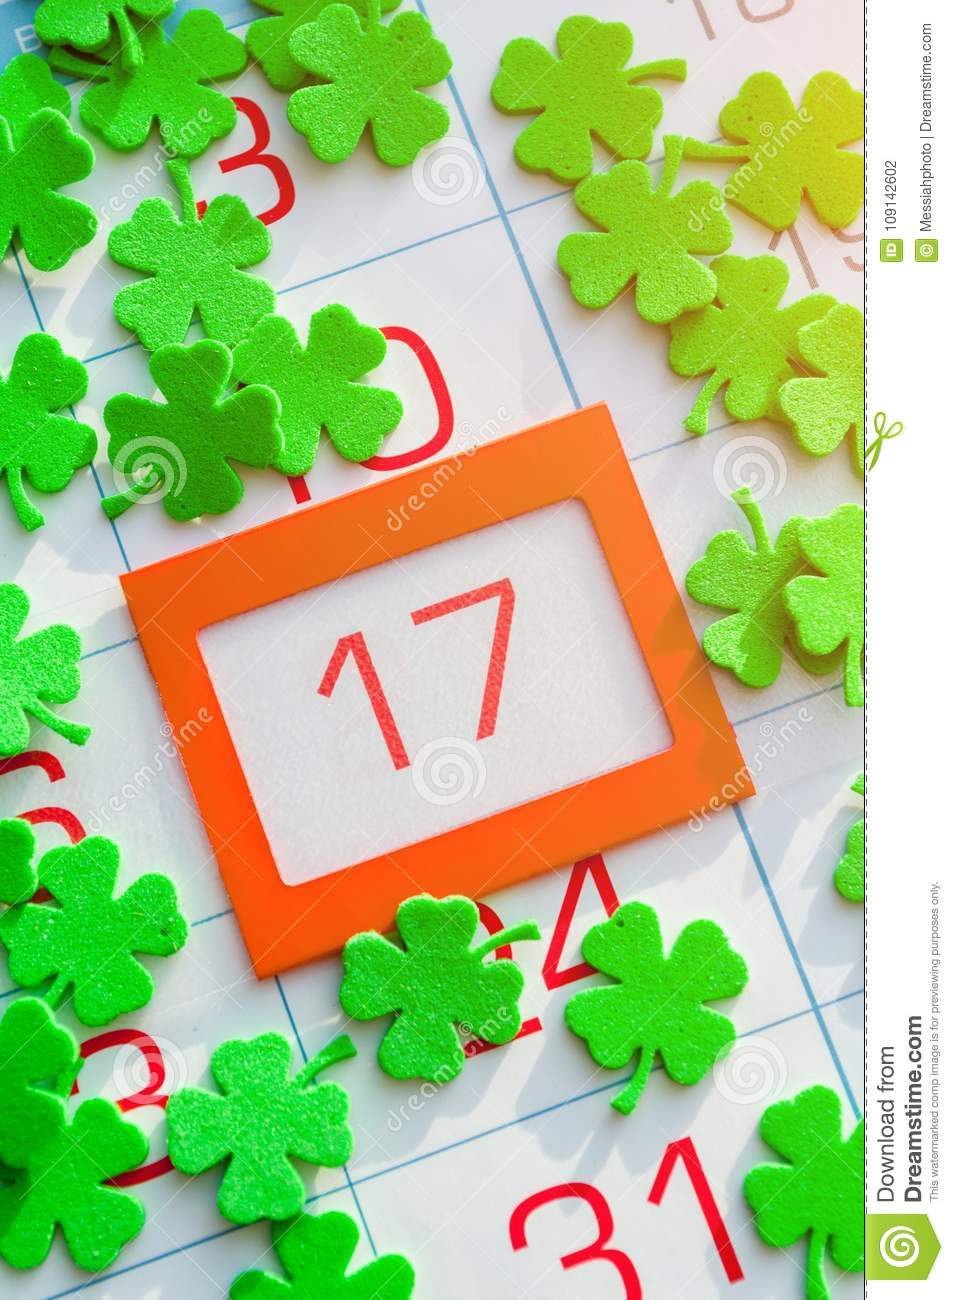 St Patrick`s Day festive card. Green quatrefoils on the calendar with orange framed 17 March